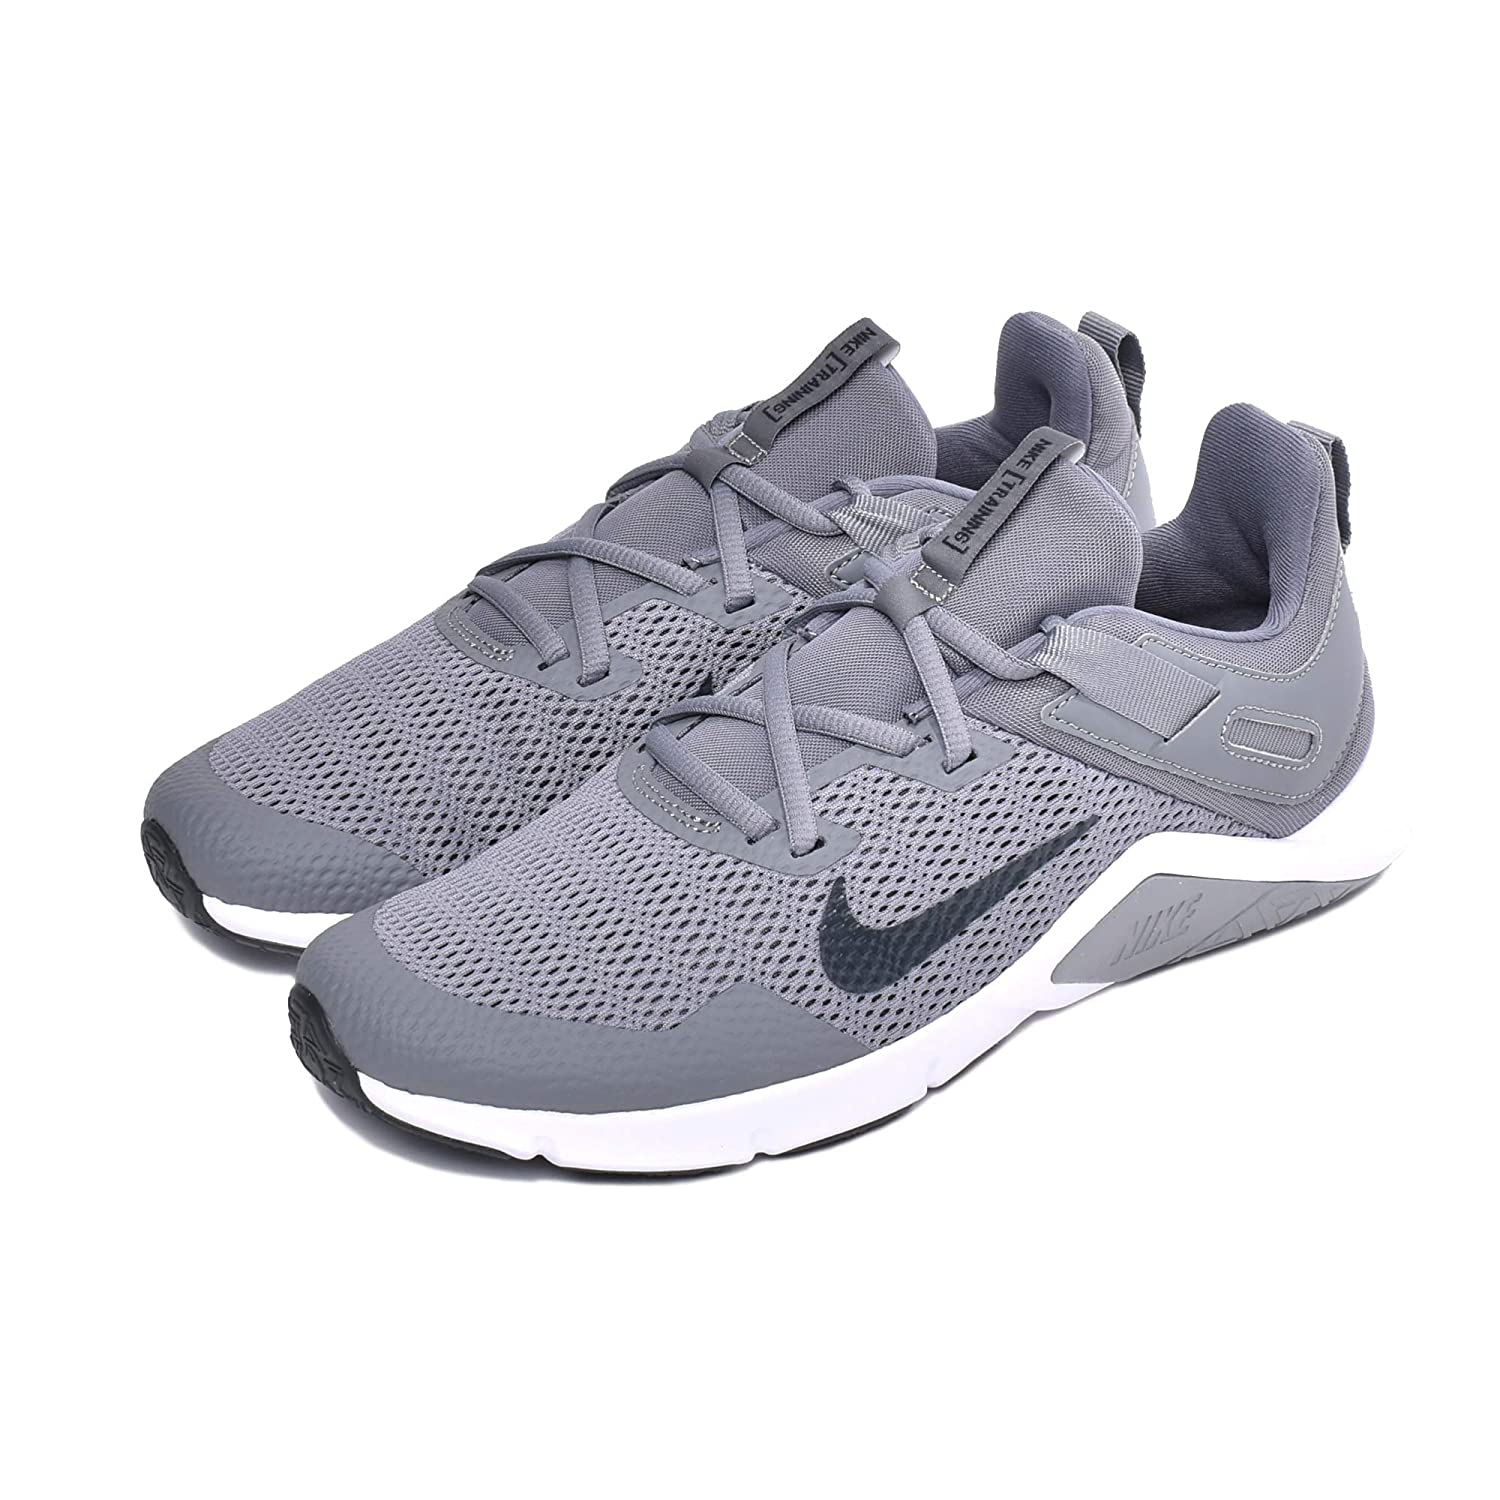 Nike Men's Legend Essential Smkgry Training Shoes-8 UK (42.5 EU) (9 US) (CD0443-002)